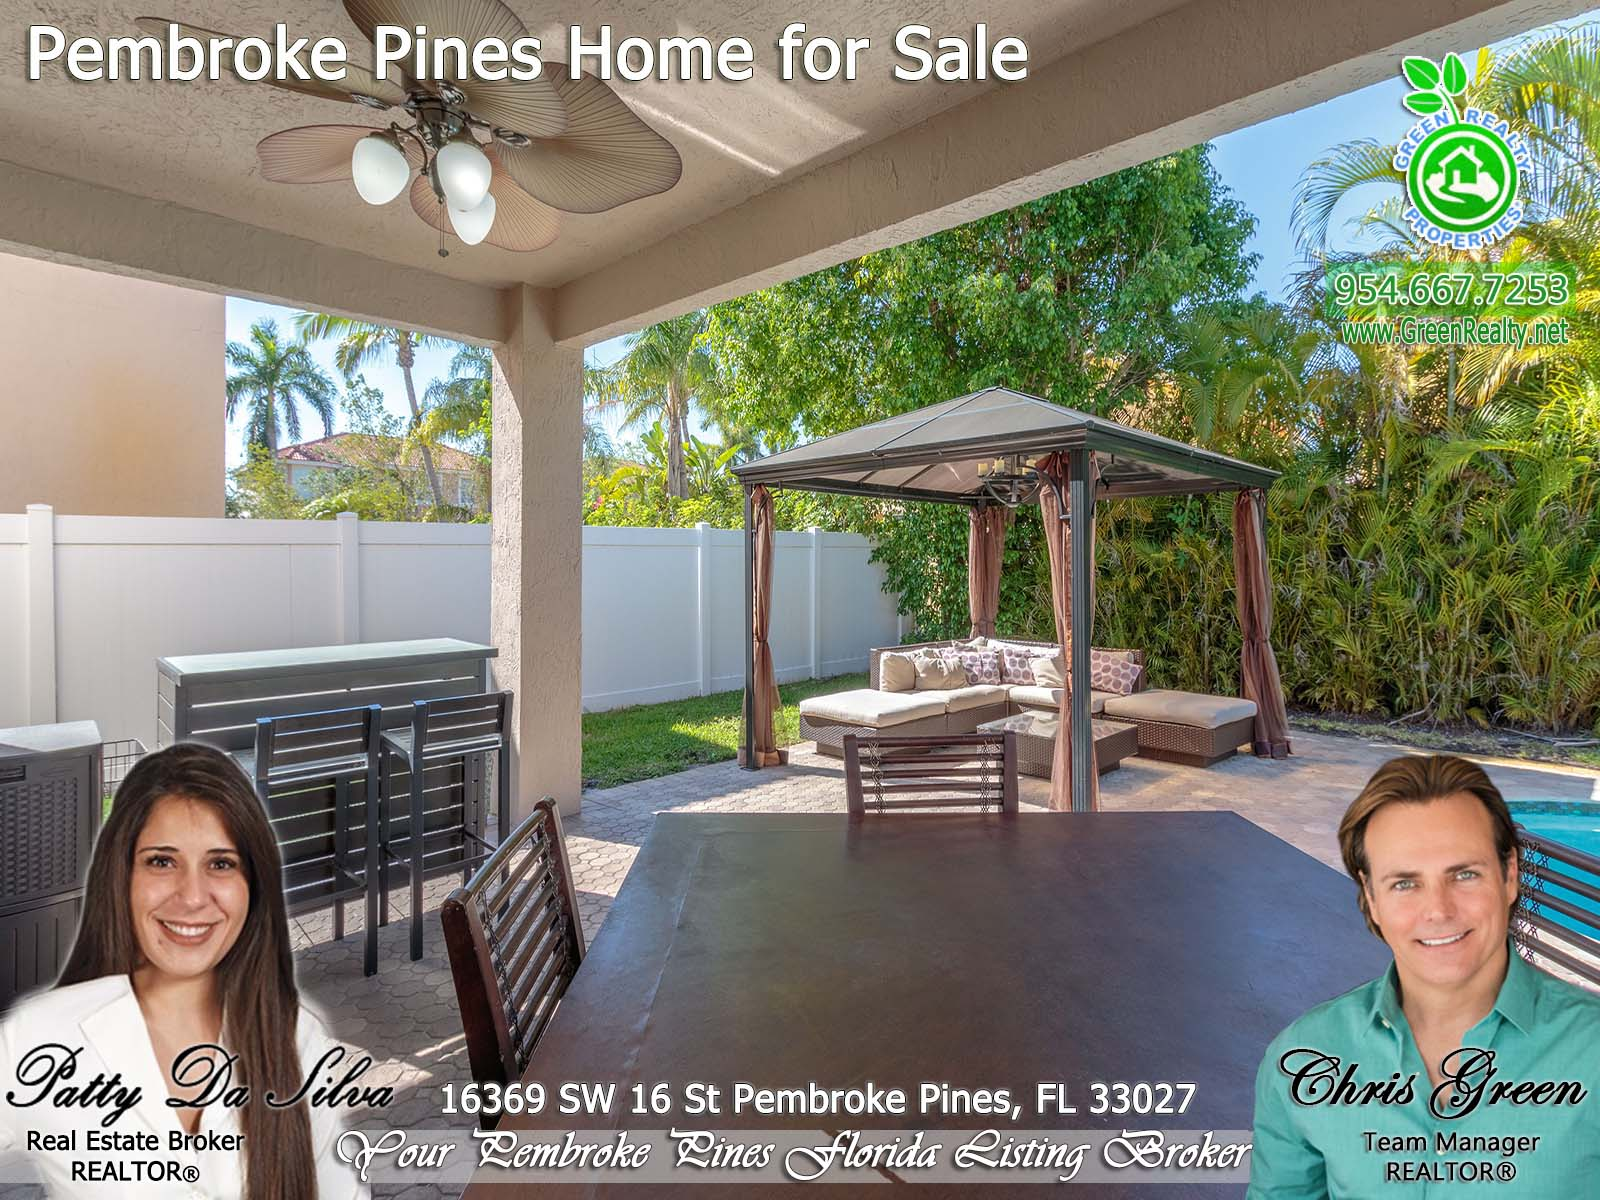 21 Pembroke Pines Realtor Broker Patty Da Silva south florida listing (24)